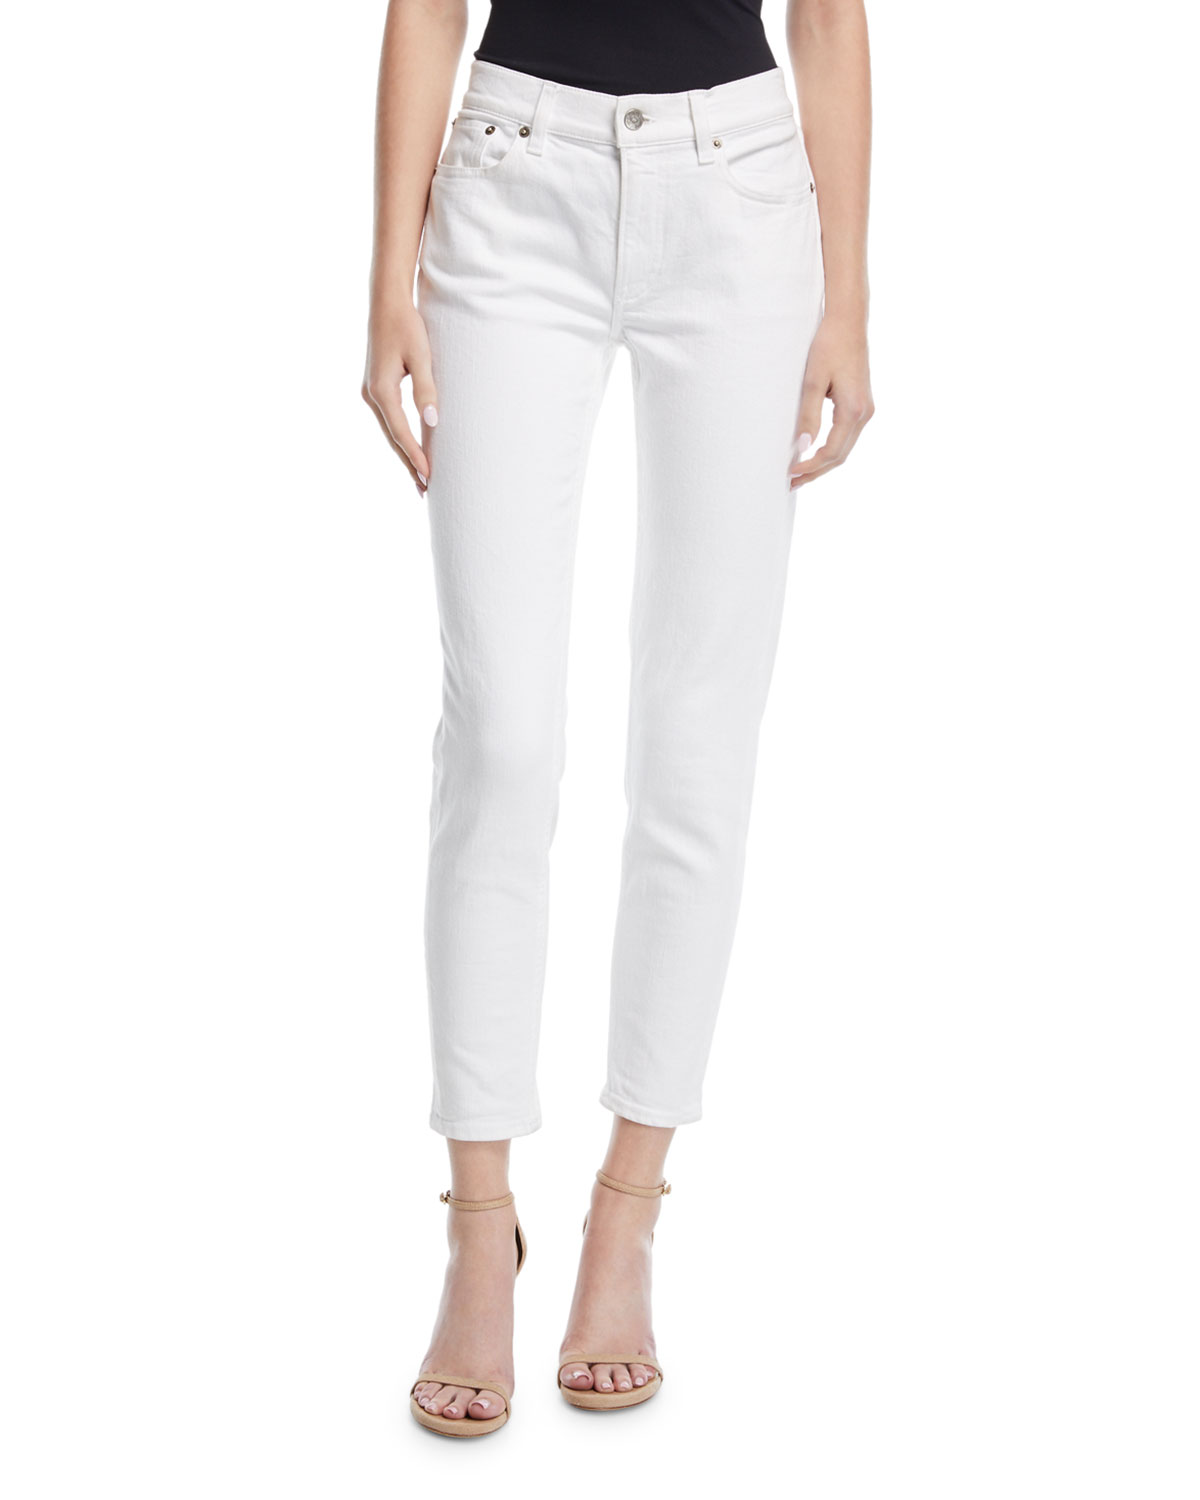 Ralph Lauren Collection 400 Matchstick Ankle Jeans, White